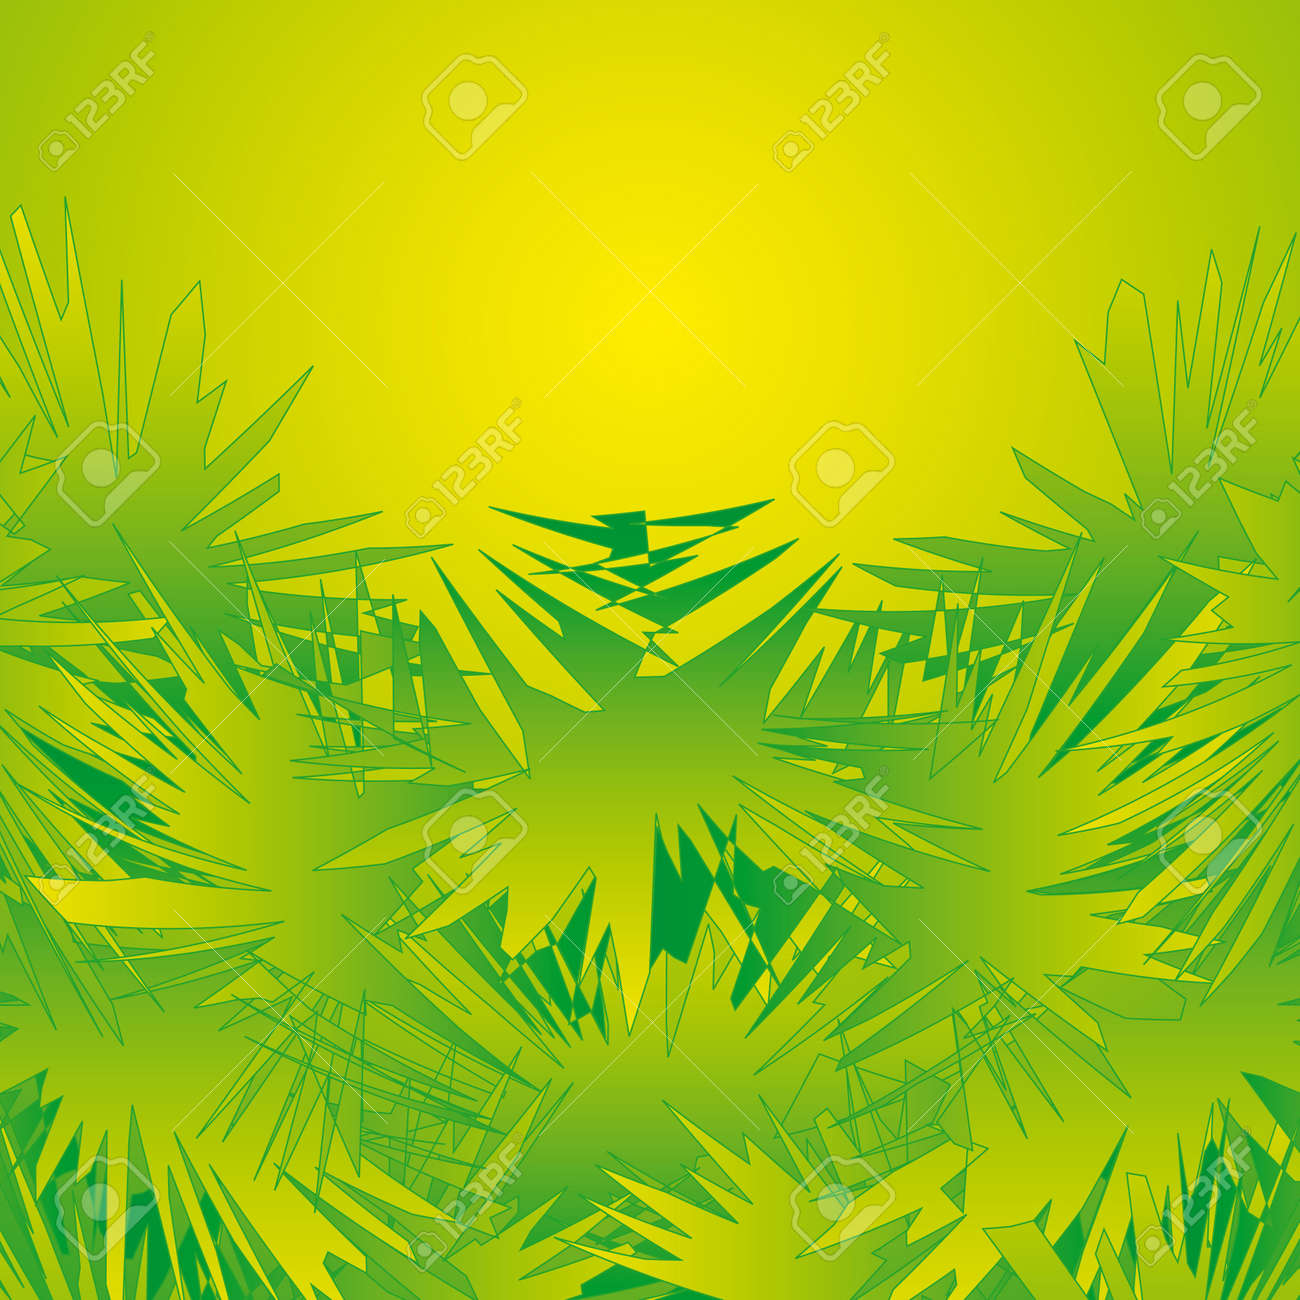 Jungle Decoration Jungle Decoration Royalty Free Cliparts Vectors And Stock